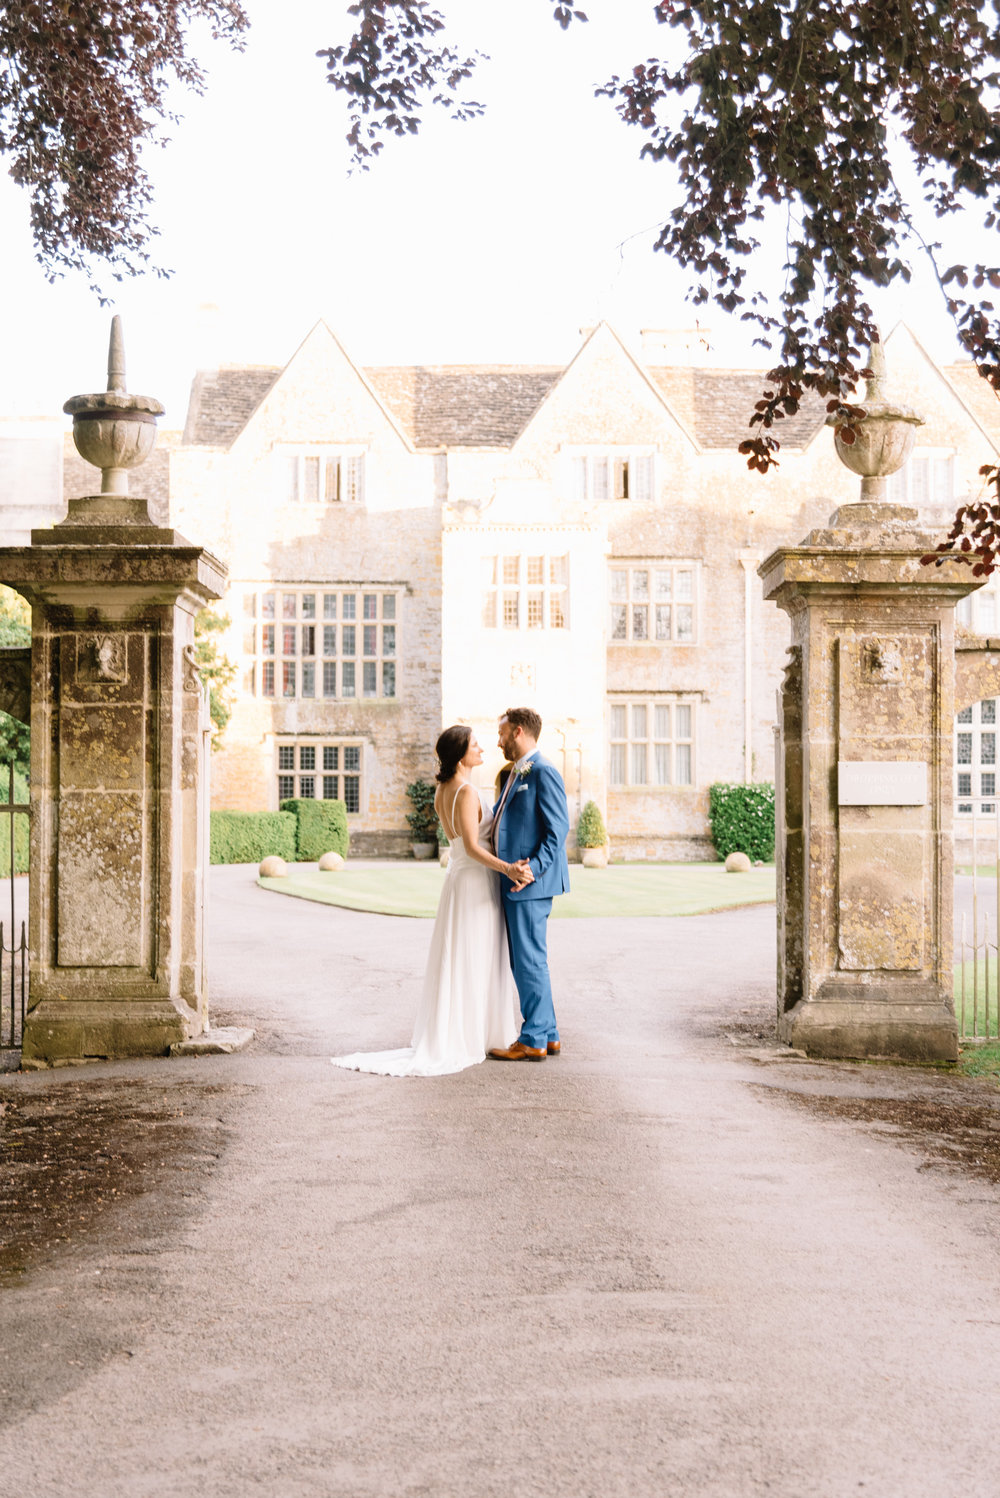 Luxury Wedding Planner UK |Jennifer & Timothy's English Country Manor Wedding Soft Pink Pale Blue White and Silver Toned Green Neutral Tones American Bride North Cadbury Court |Nicole Colwell Photography 0160.jpg